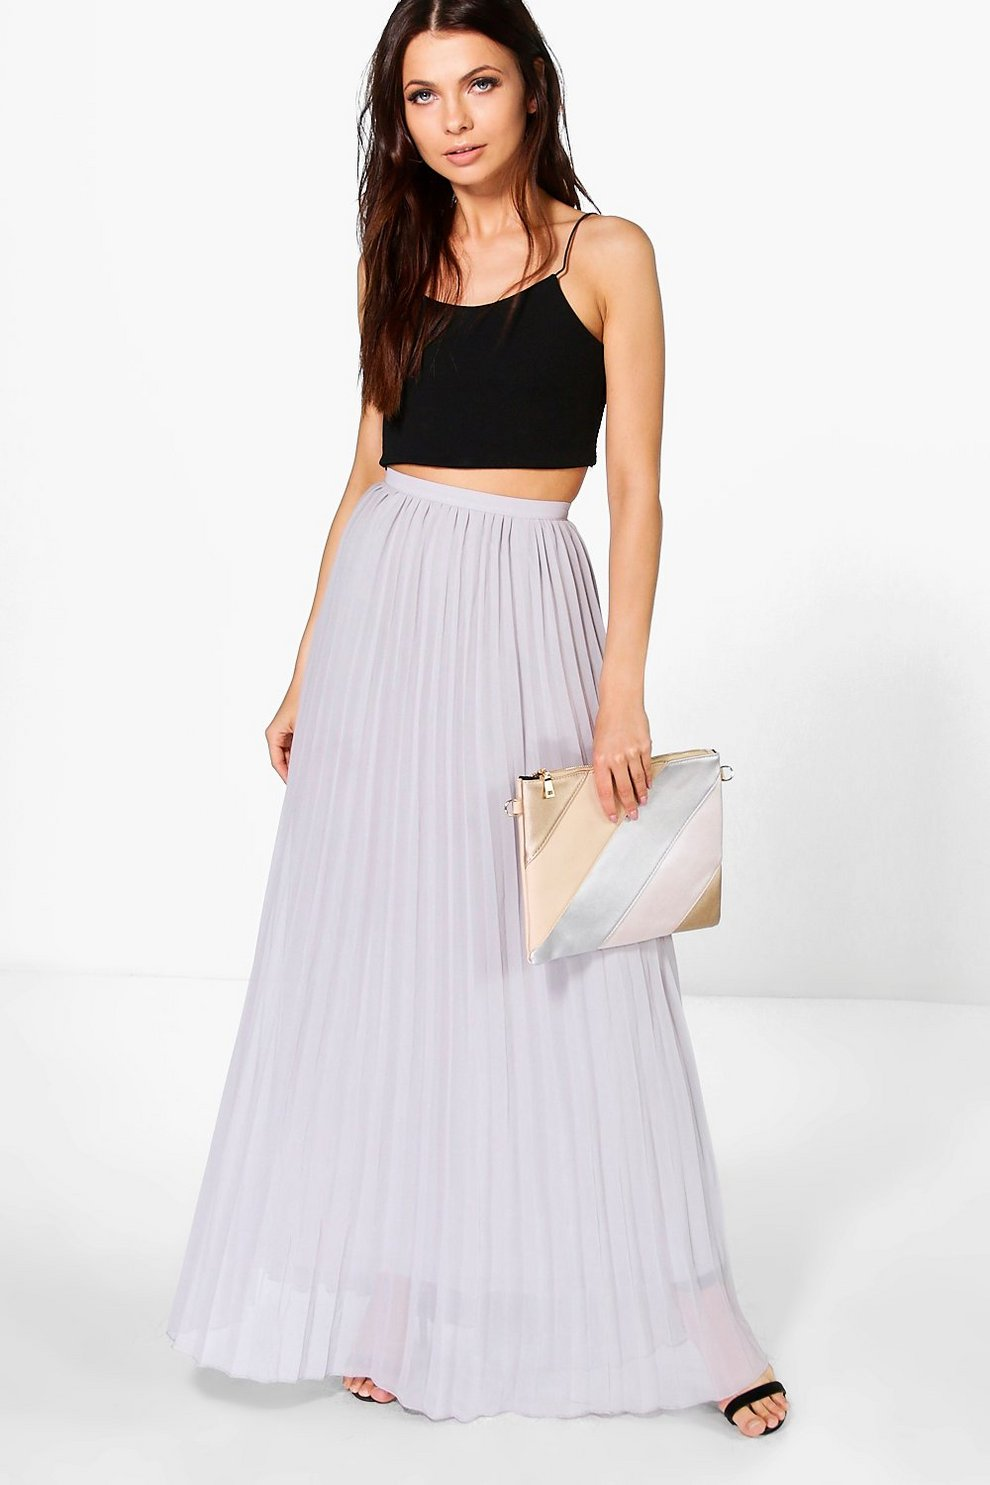 Looks - How to maxi wear pleated chiffon skirt video